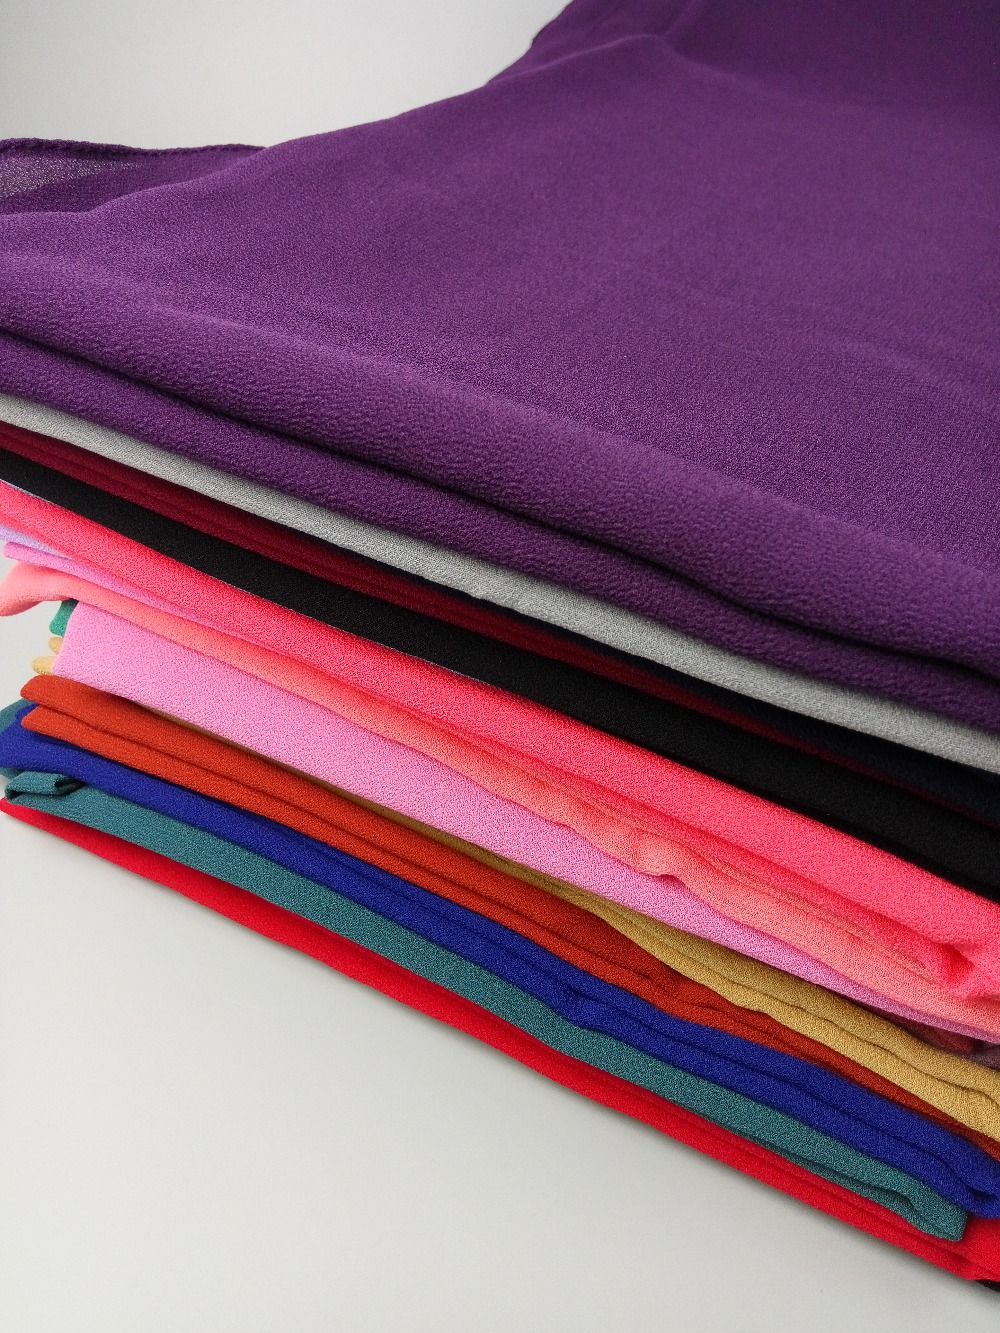 A 58 50pcs Big Size 18085cm Top Sale Plain Bubble Chiffon Hijab All New Beat Sporty Esp Cbs Iss Fusion Magenta Black Kendal Headband Shawl Summer Muslim Scarves Scarf Us249